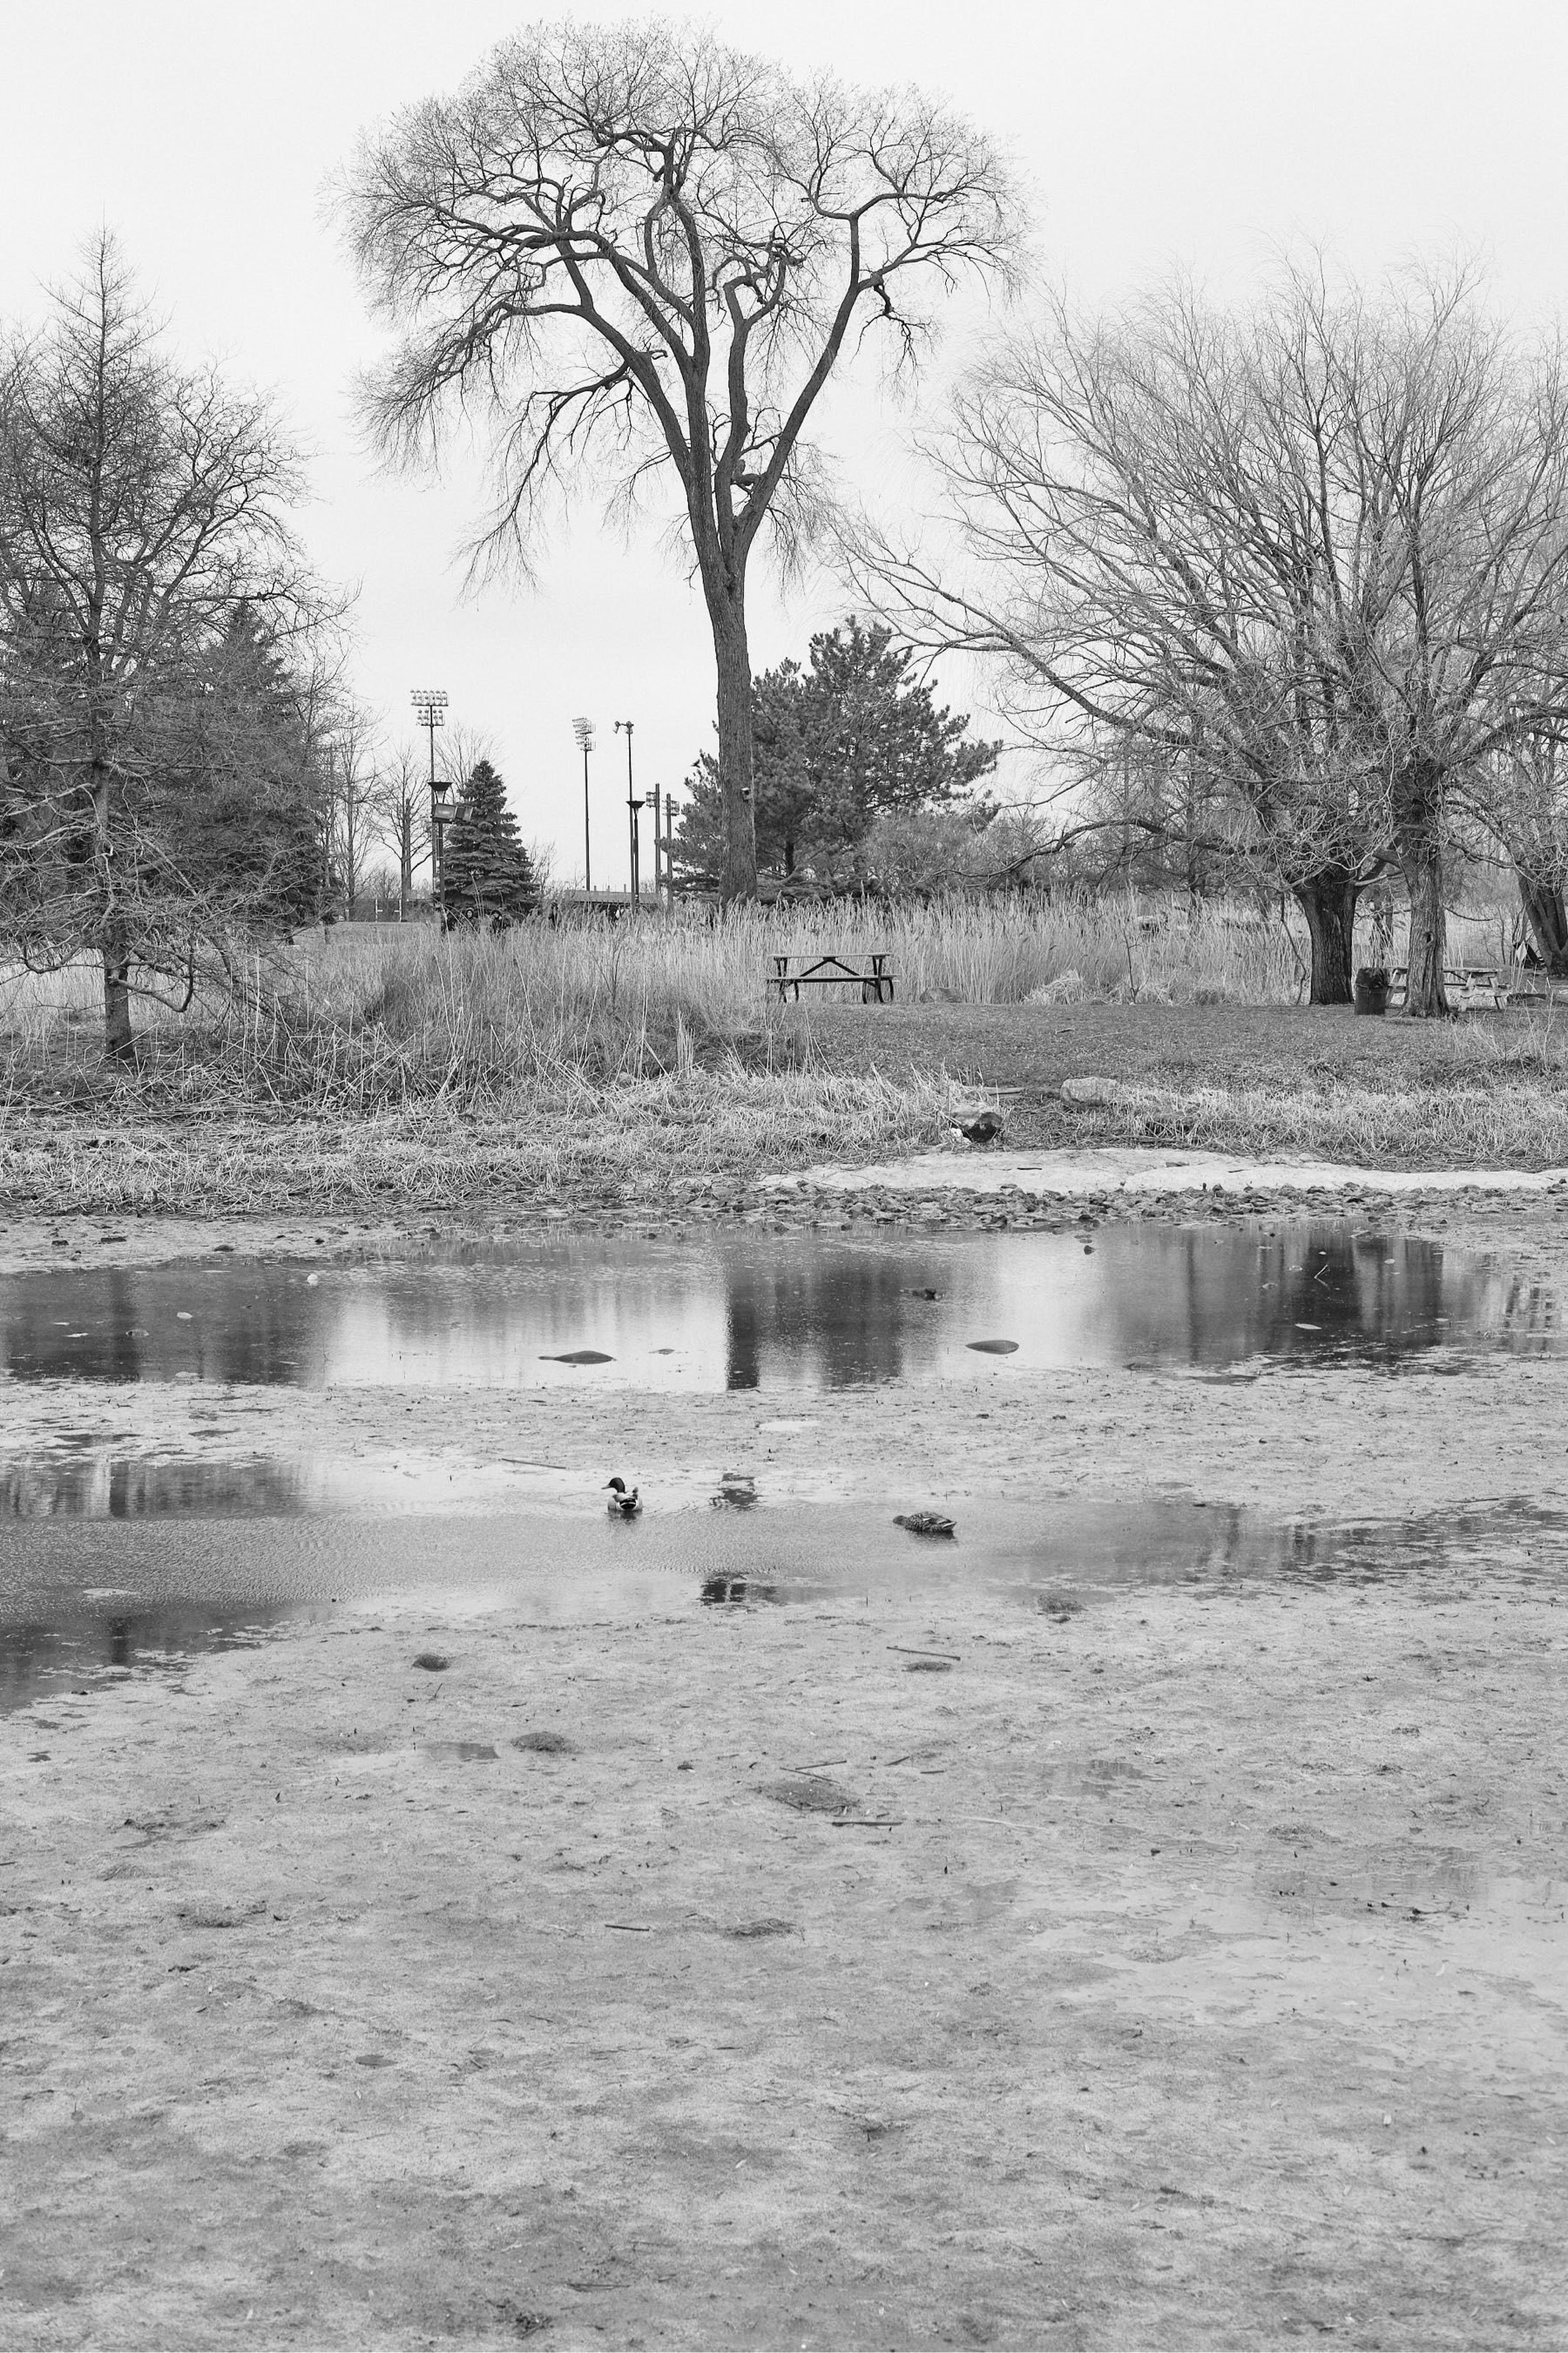 Two ducks forage in a puddle